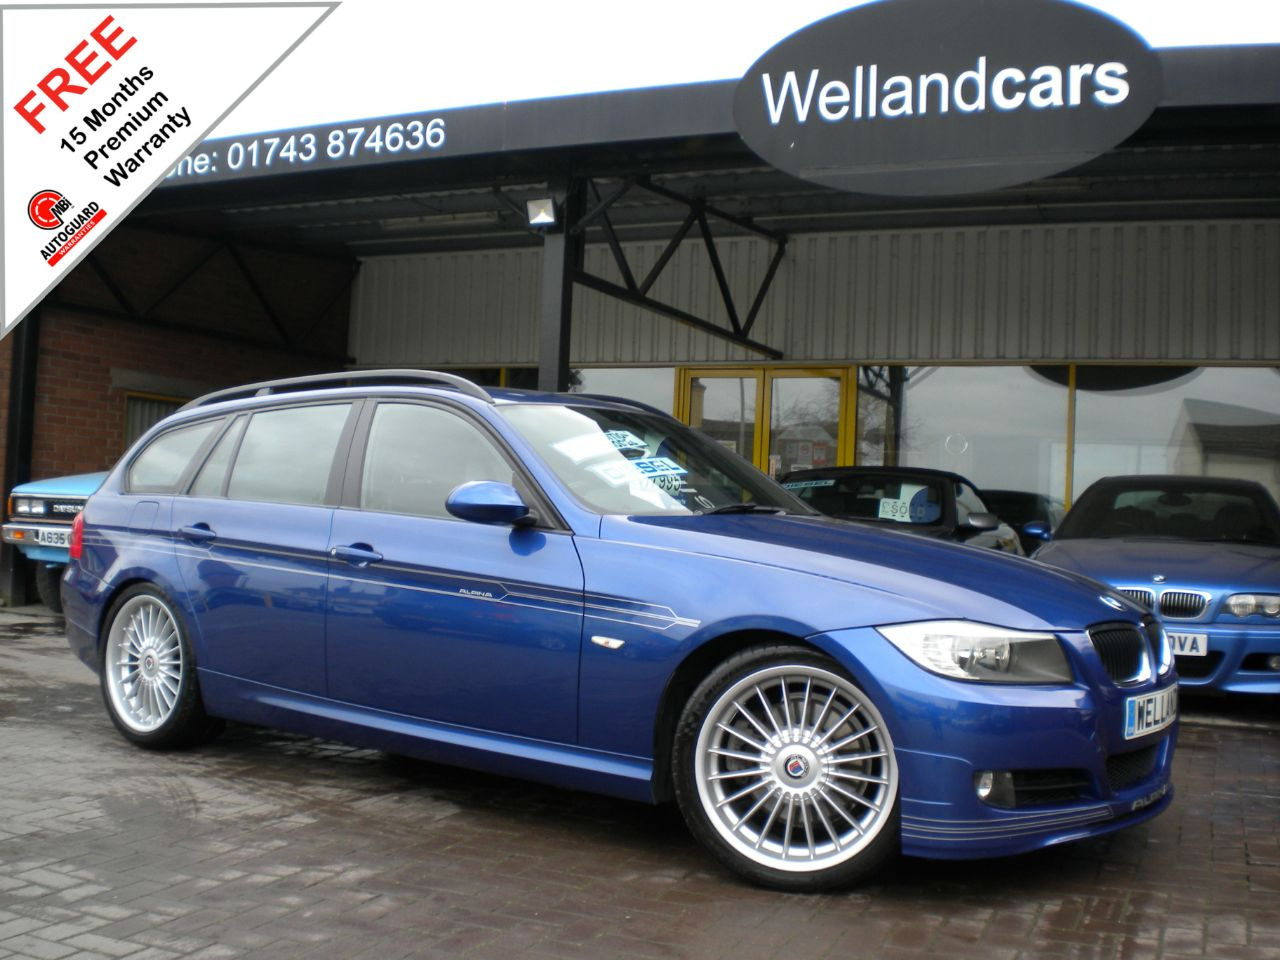 BMW Alpina 2.0 D3 Bi-Turbo Diesel Automatic Touring, F/S/H, VERY RARE OPPORTUNITY#15 MONTH WARRANTY INCLUDED Estate Diesel Le Mans Metallic Blue at Welland Cars Shrewsbury